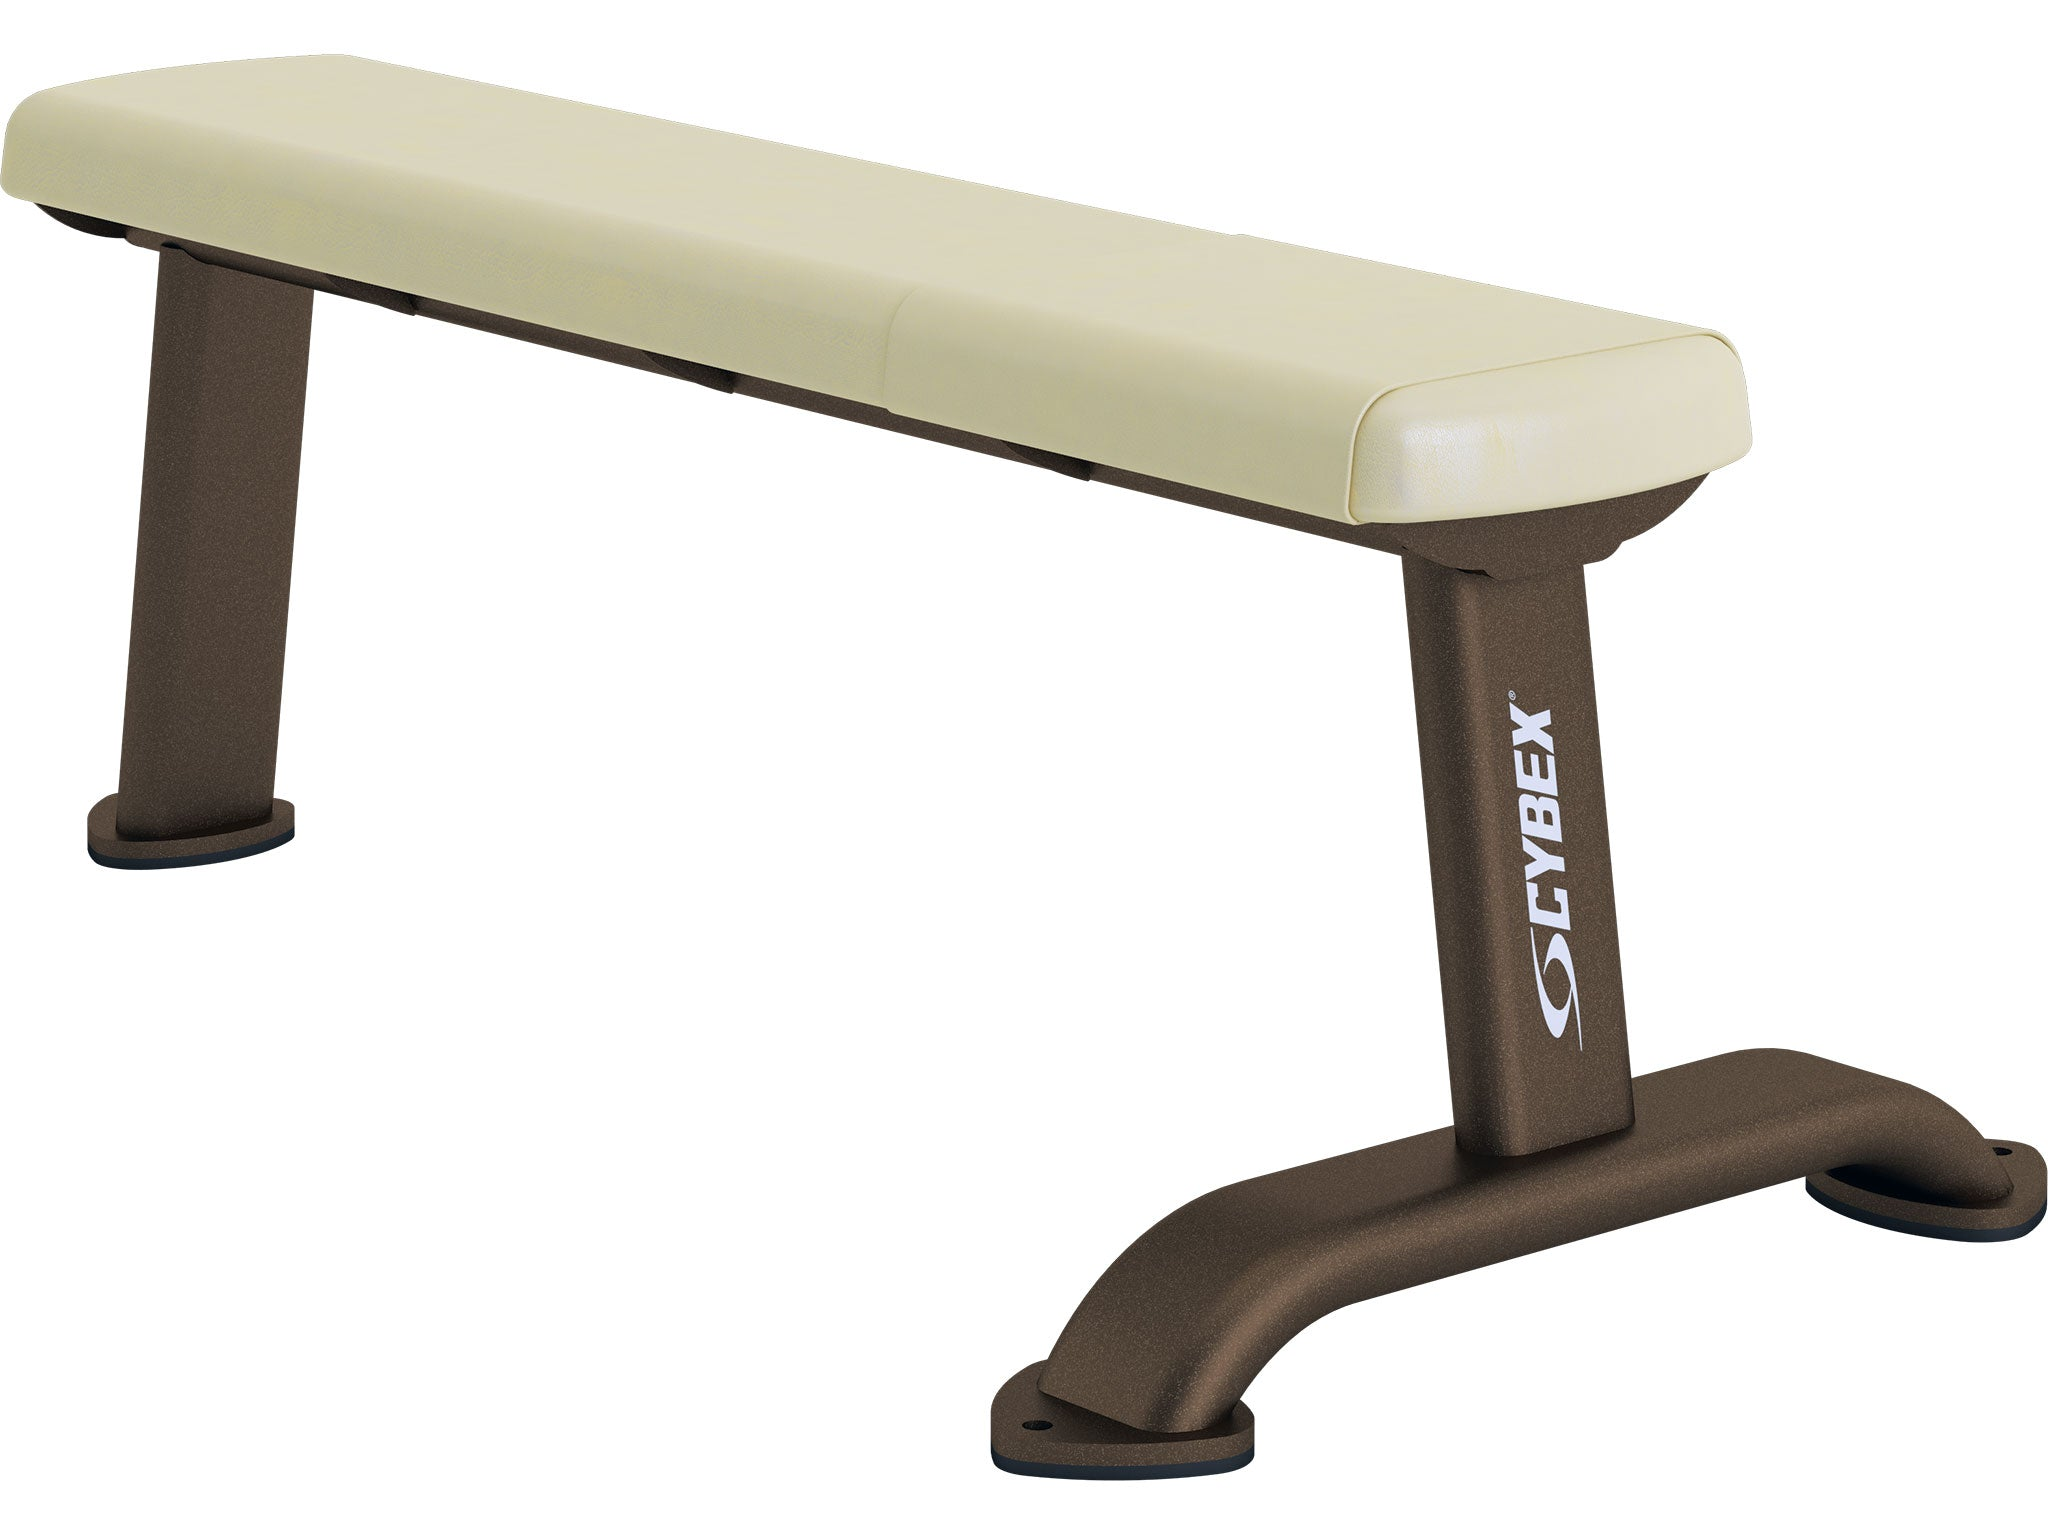 Refurbished Cybex Flat Bench New Style 16042